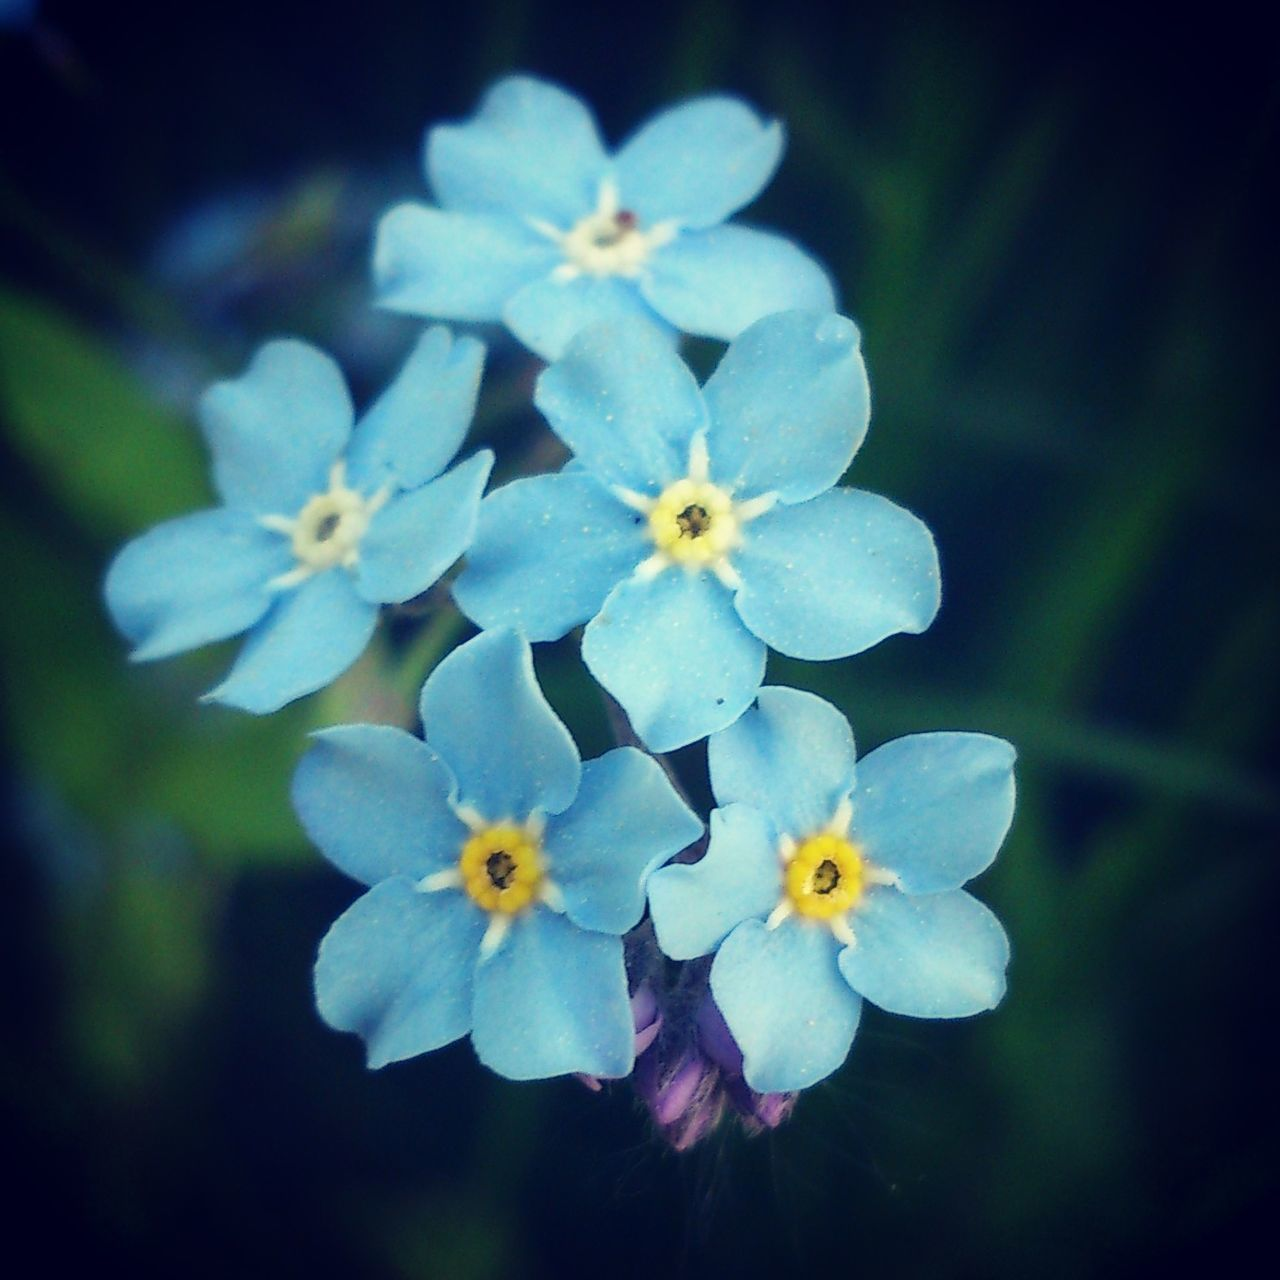 Flower Petal Close-up Beauty In Nature In Bloom Nature Forget Me Not